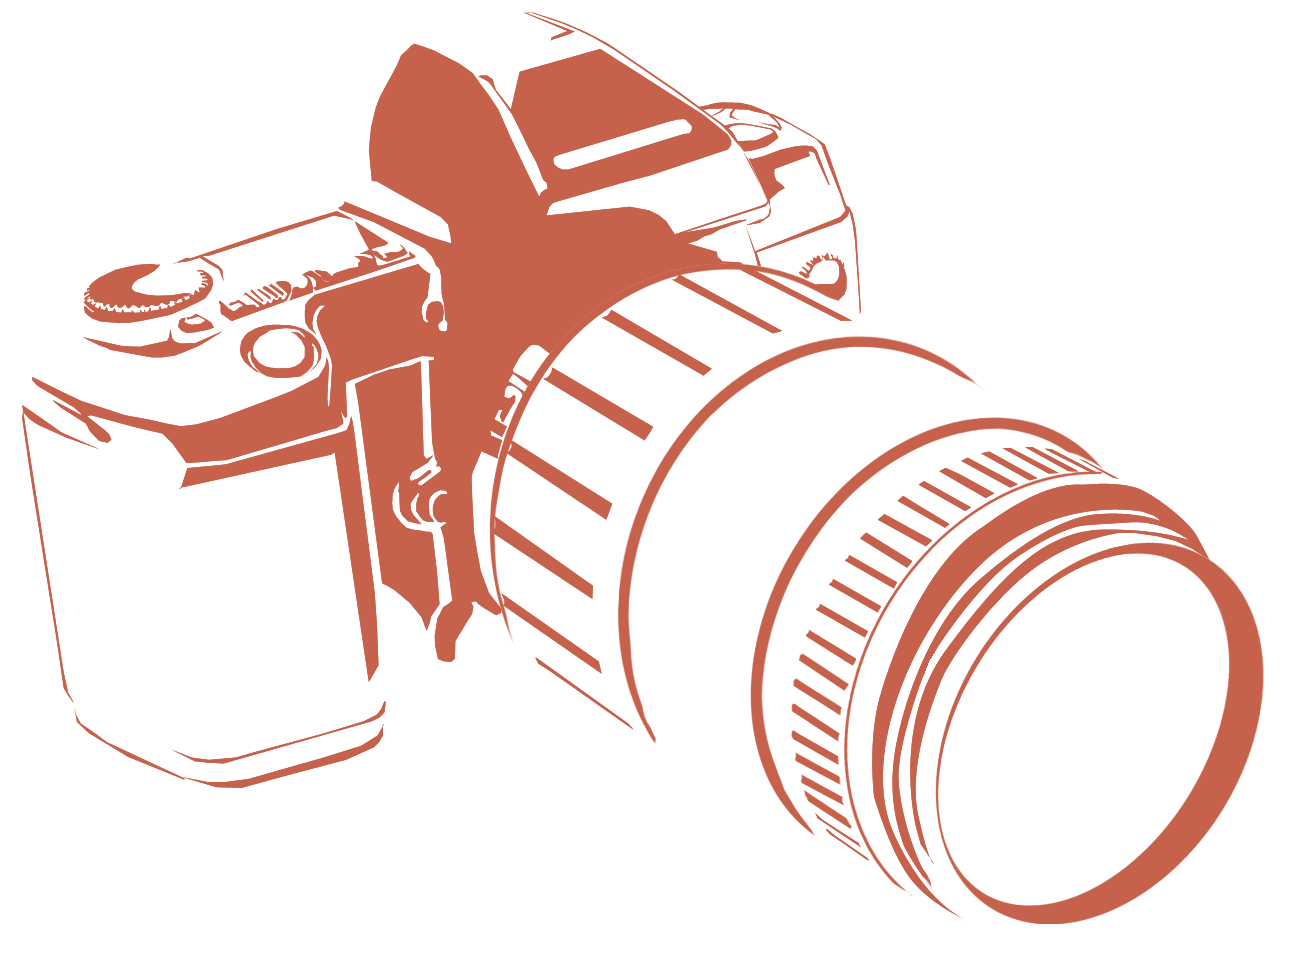 Download Photographer PNG HD For Designing Projects.